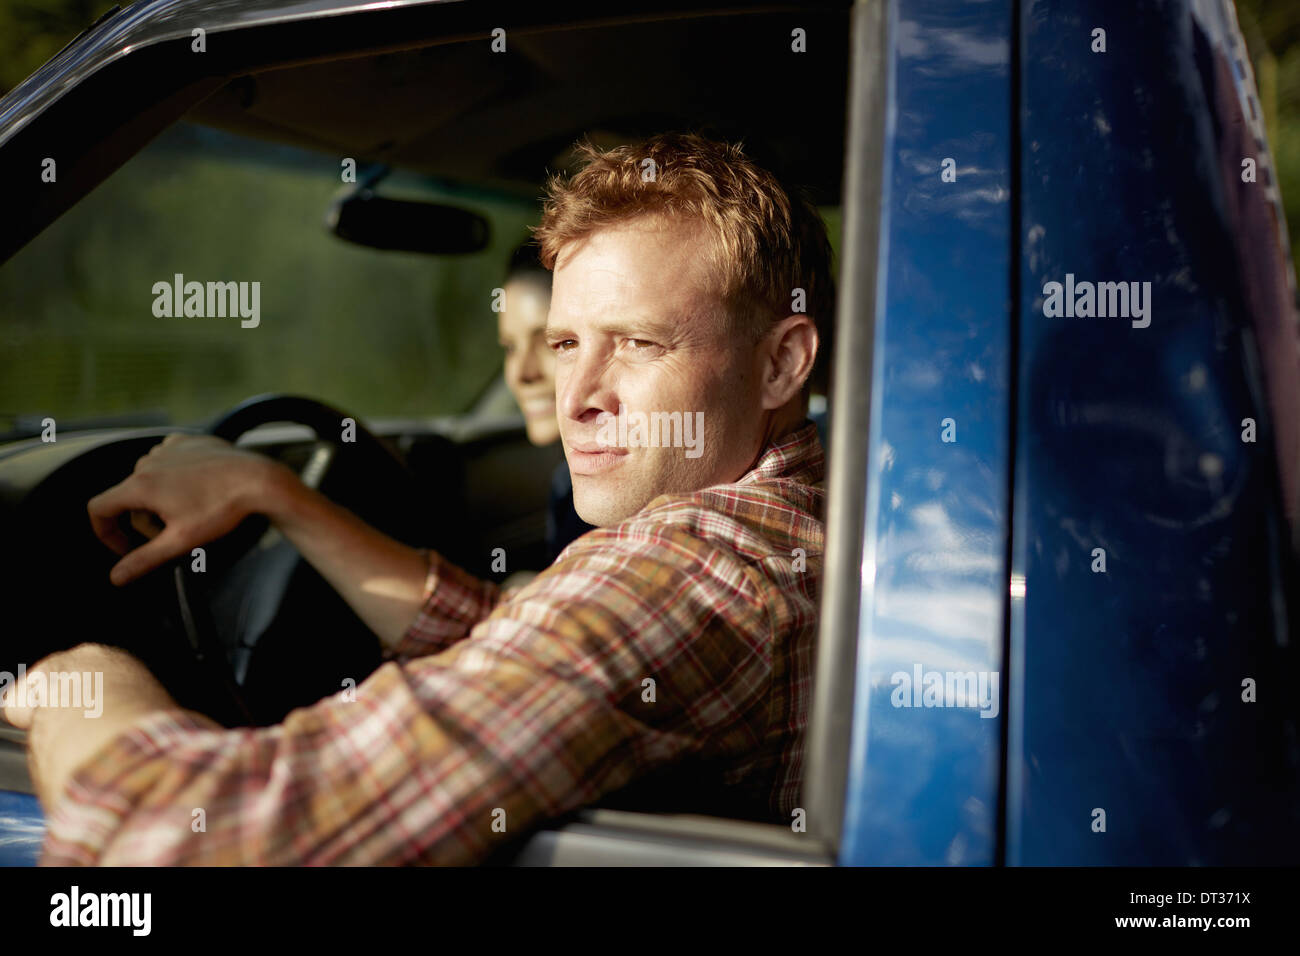 A pick up truck driver with woman beside him - Stock Image